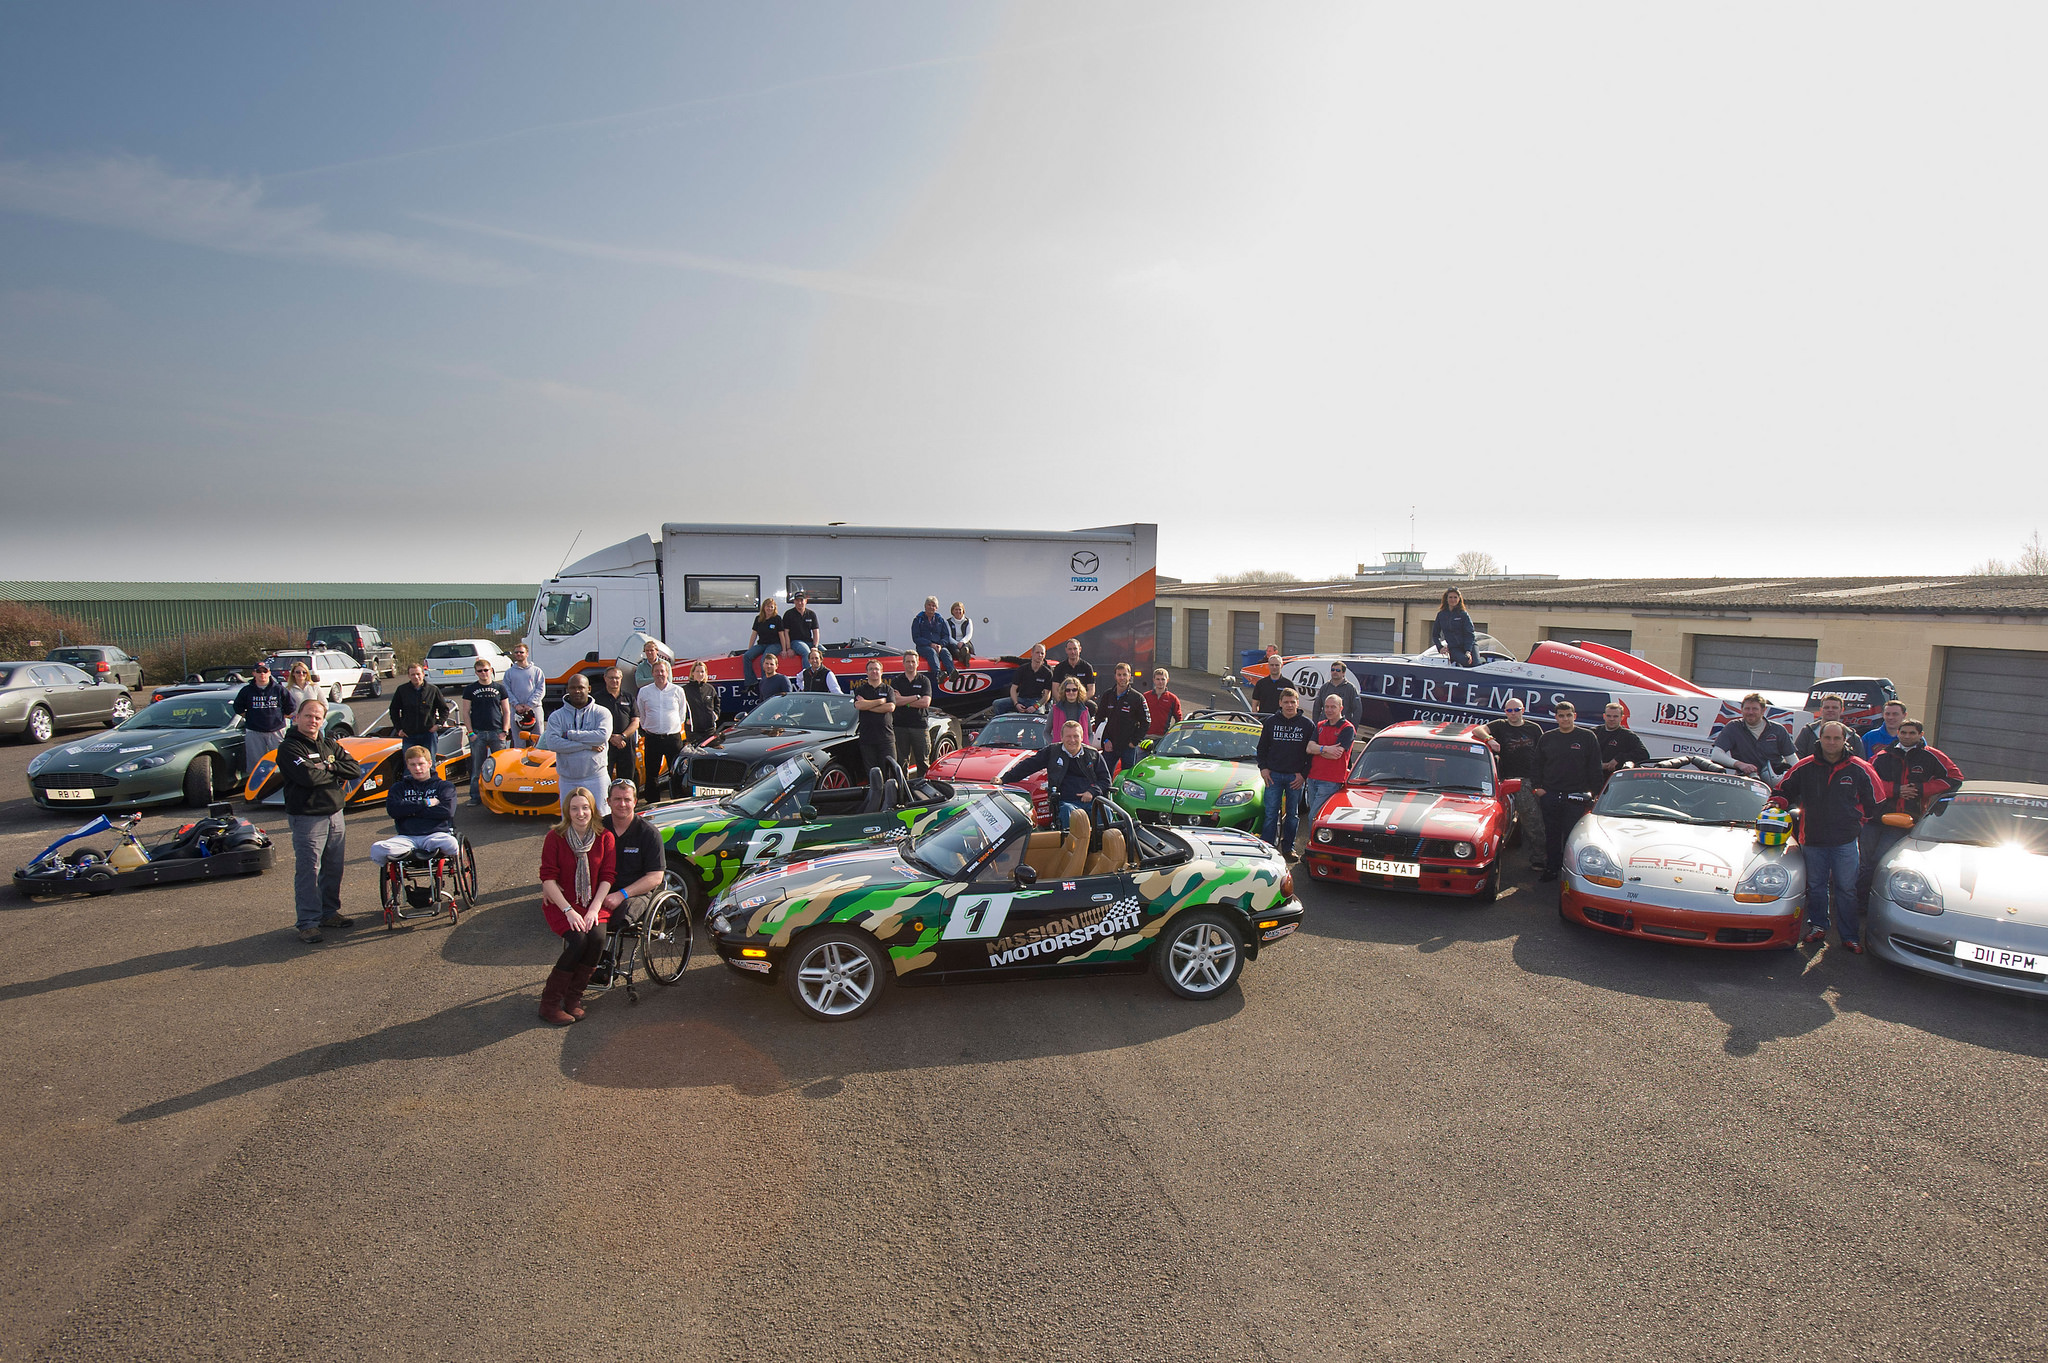 Mission Motorsport launch at Thruxton, 2012